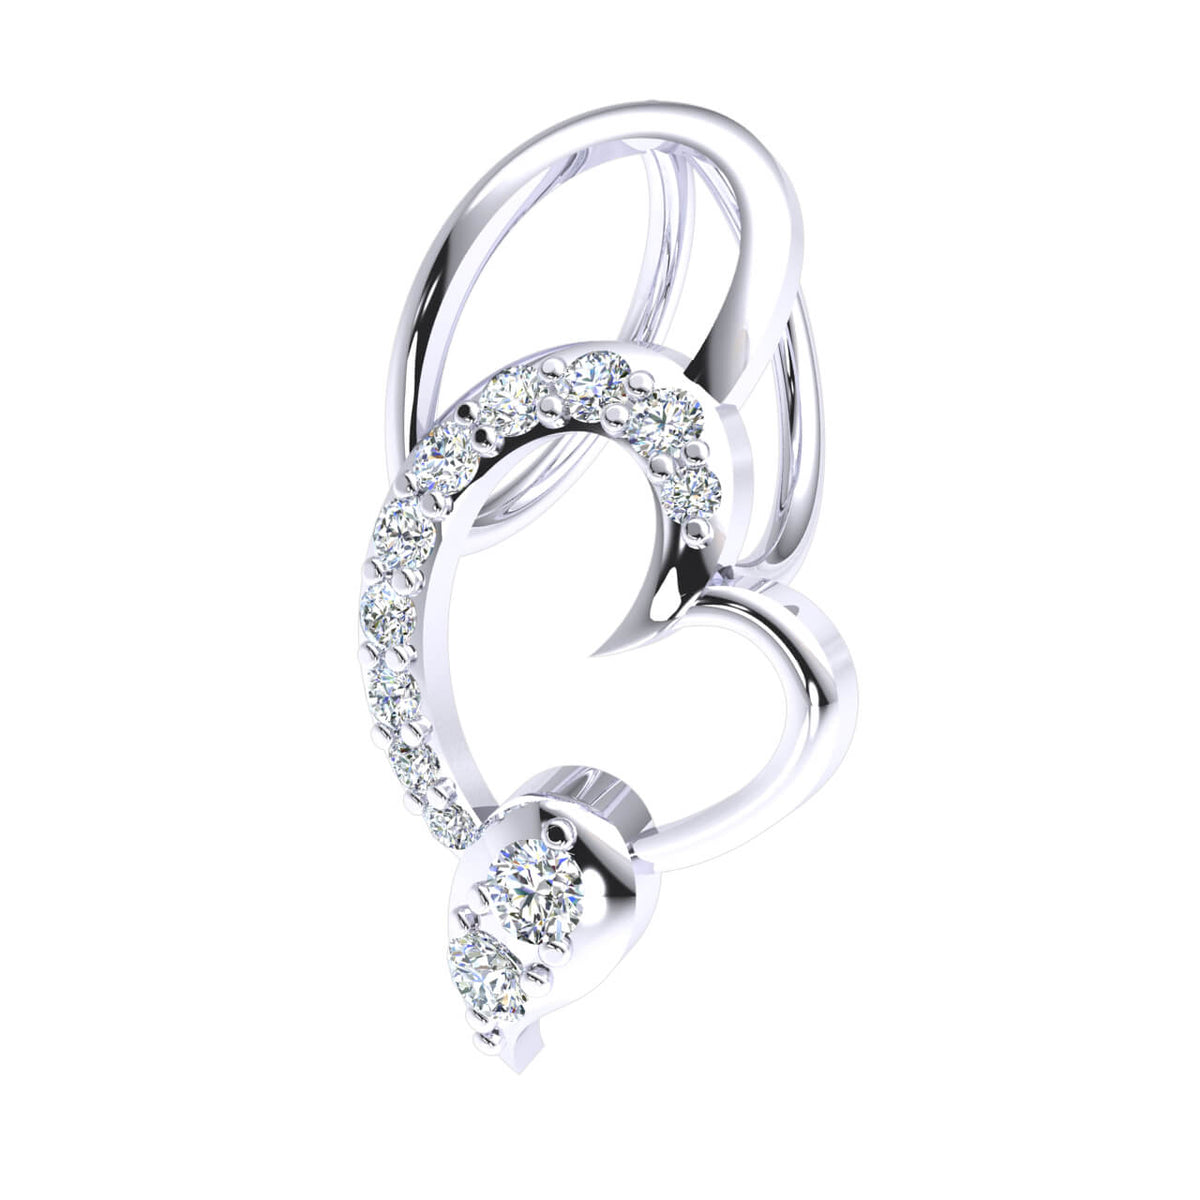 0.15 Ct Drop Round GH I1-I2 Diamond Women's Heart Pendant 925 Sterling Silver